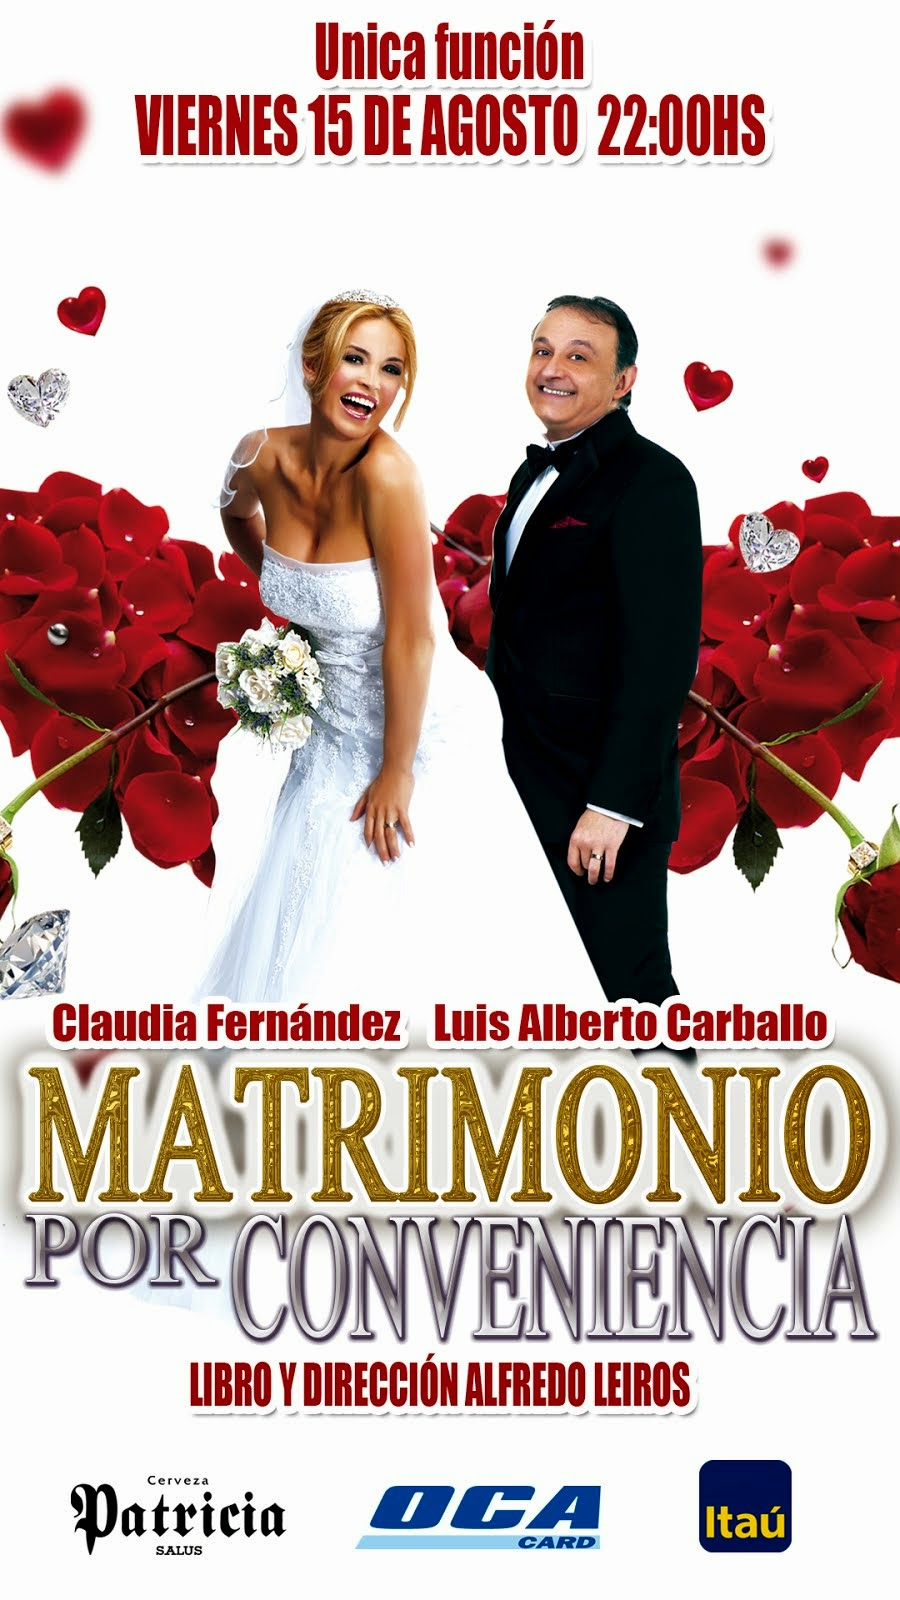 MATRIMONIO POR CONVENIENCIA: 3 DE OCTUBRE, 22 HS, VUELVE AL MOVIE CENTER